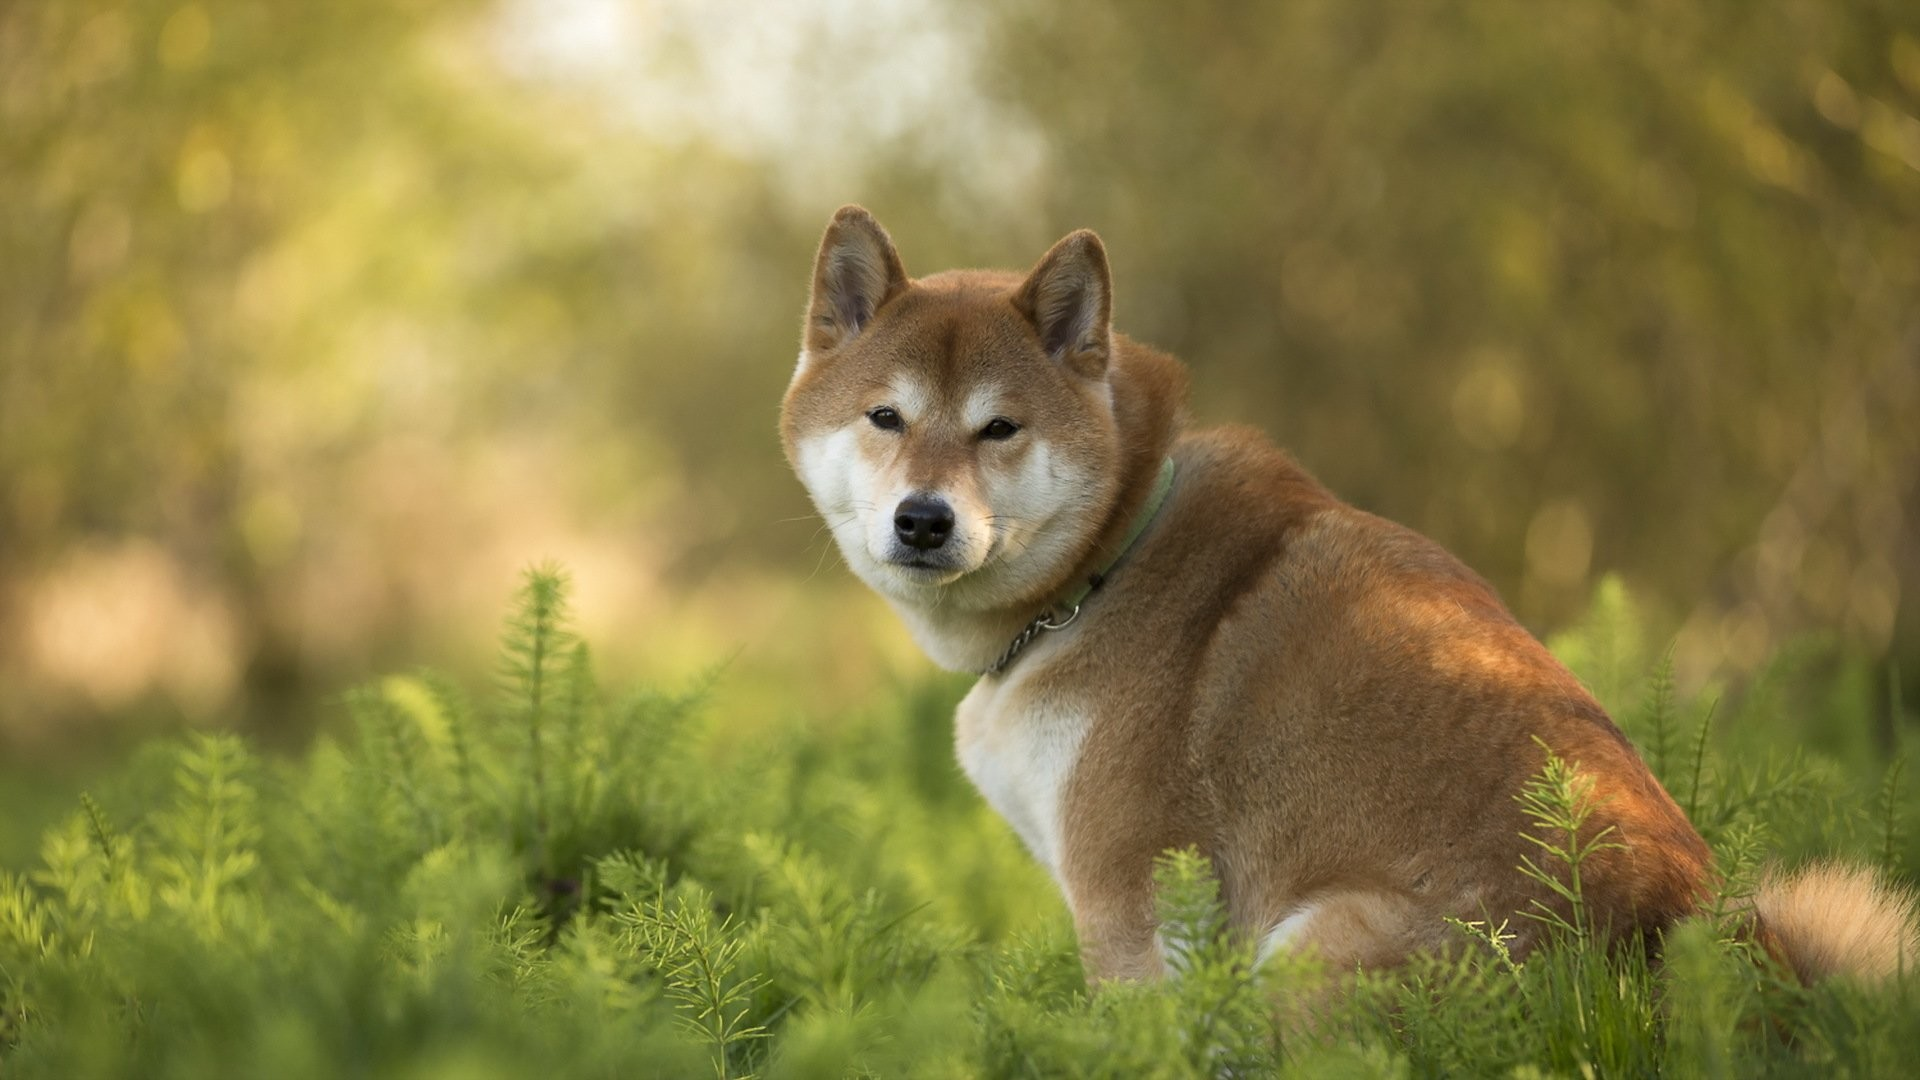 1920x1080 Hd Wallpaper Shiba Inu 1920x1080 Wallpaper Teahub Io